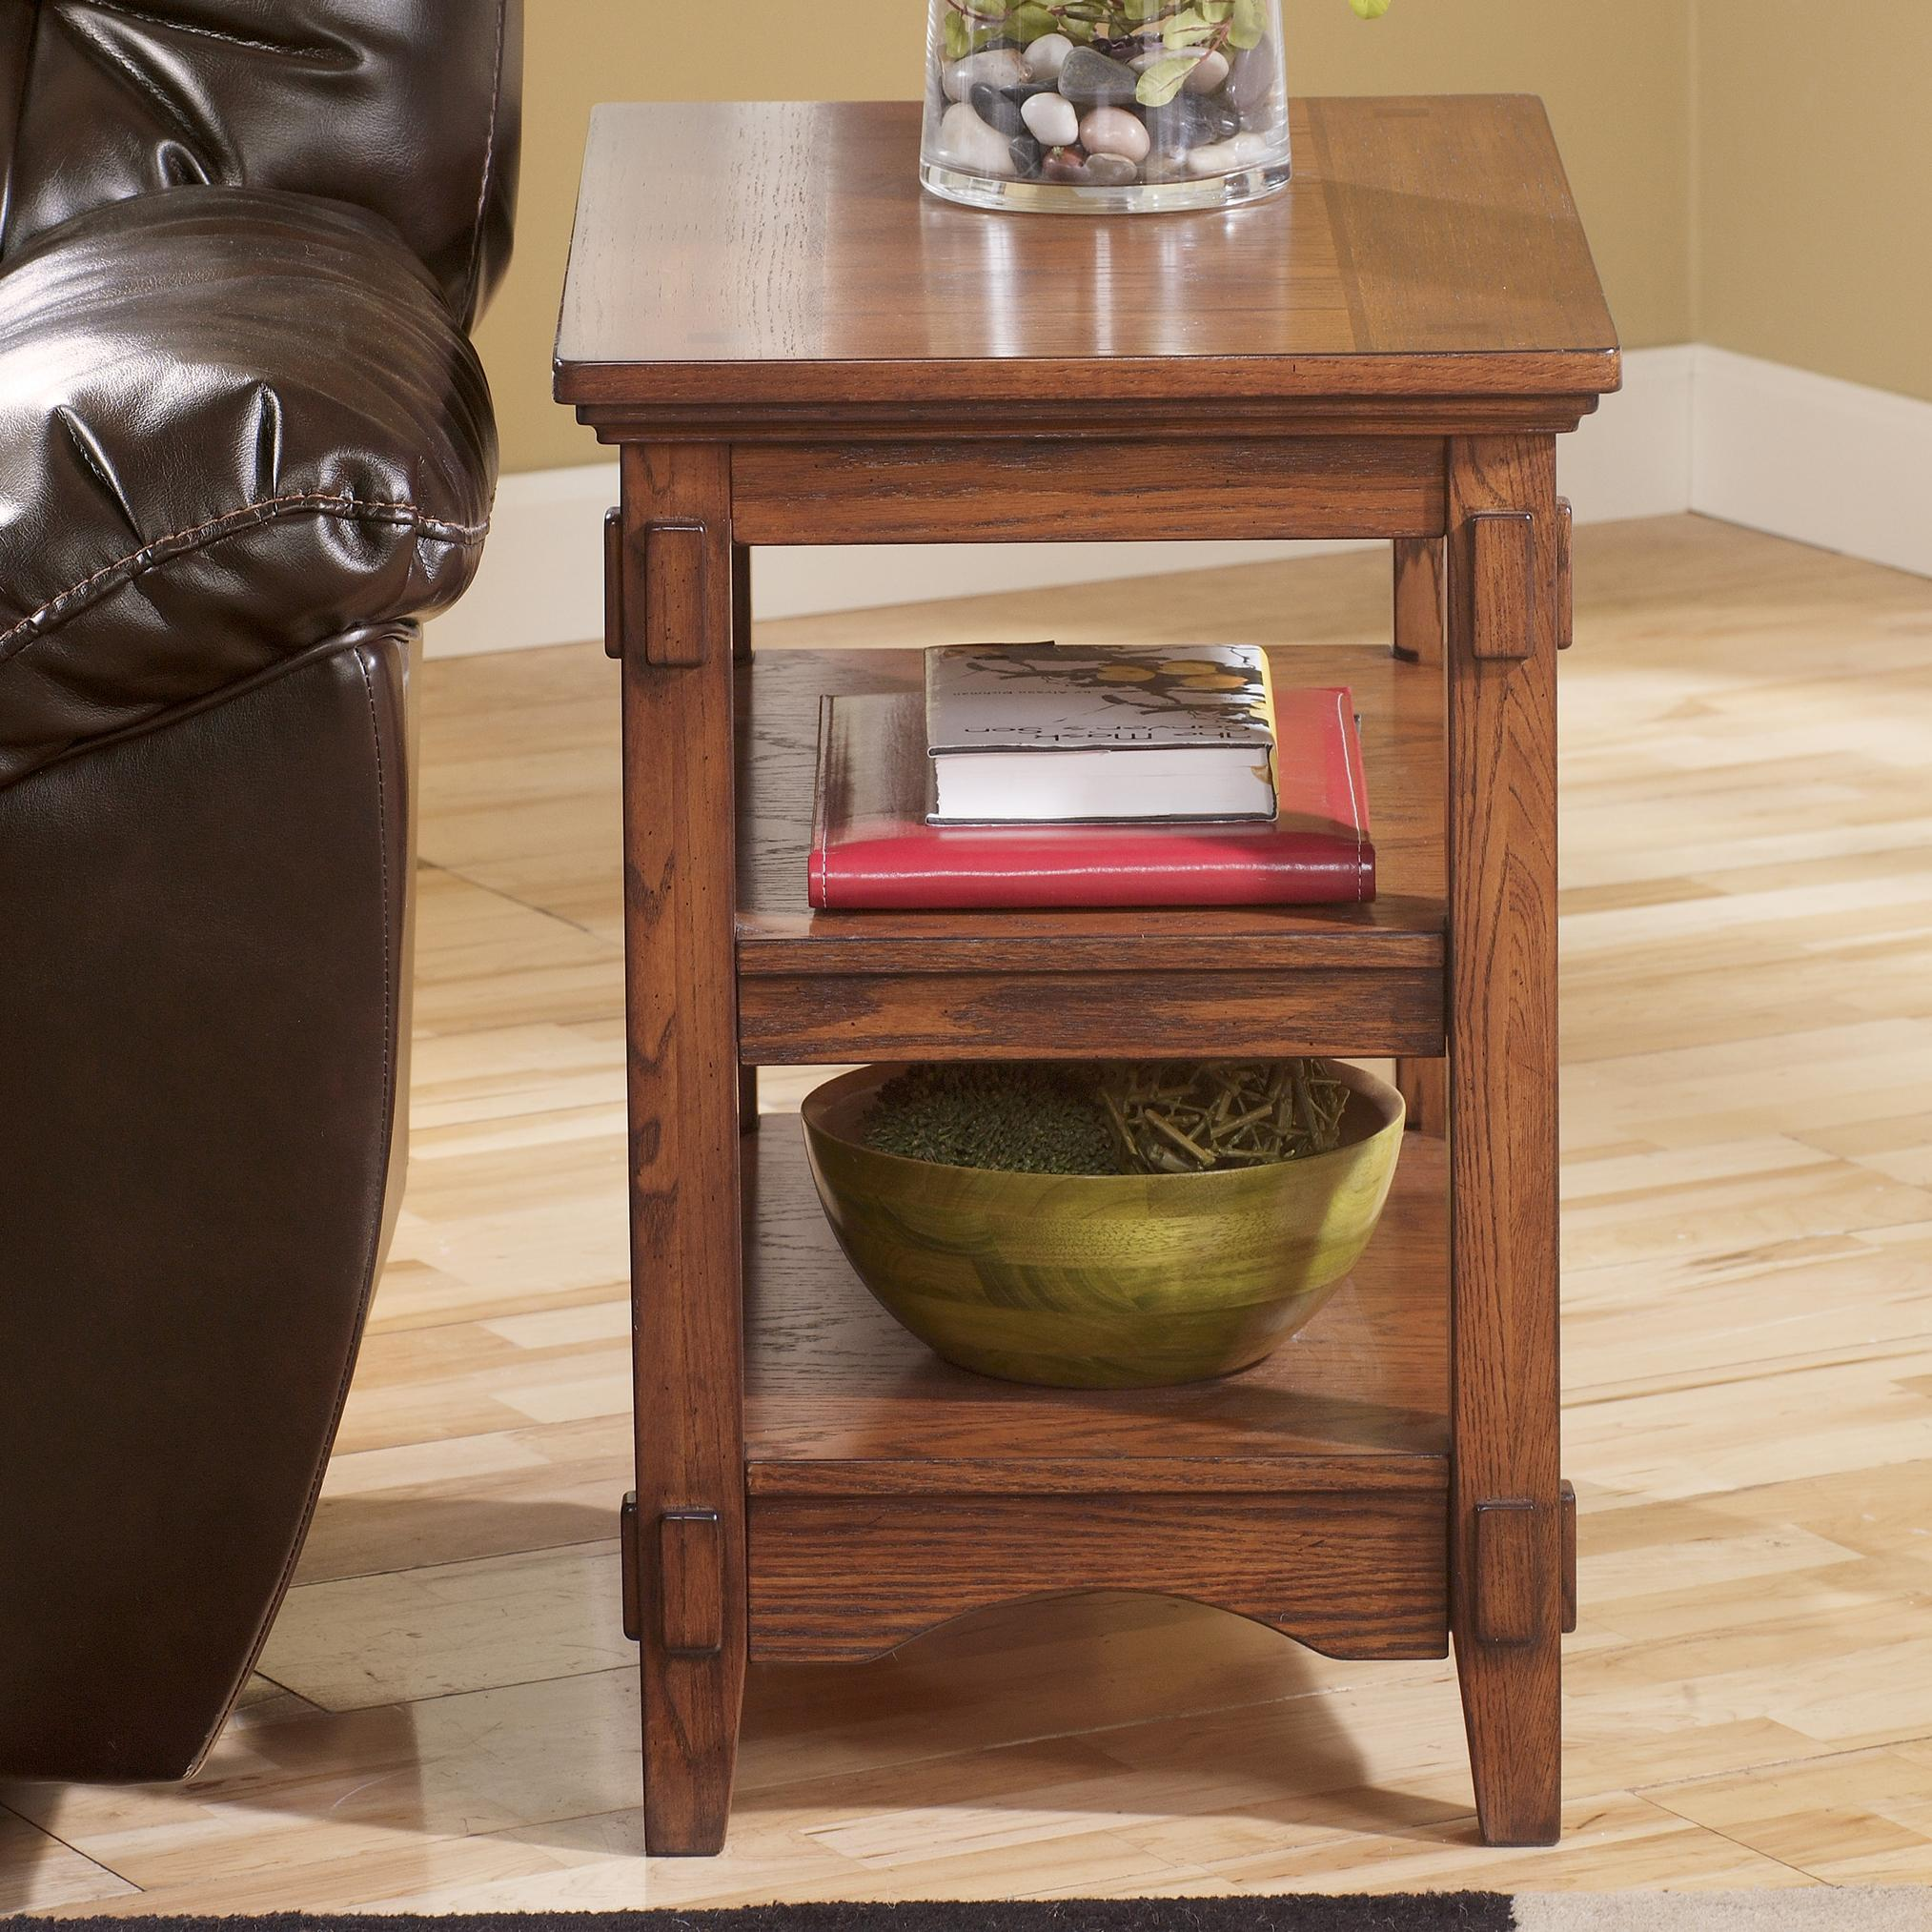 Cross Island Chairside End Table w/ Shelves by Signature at Walker's Furniture